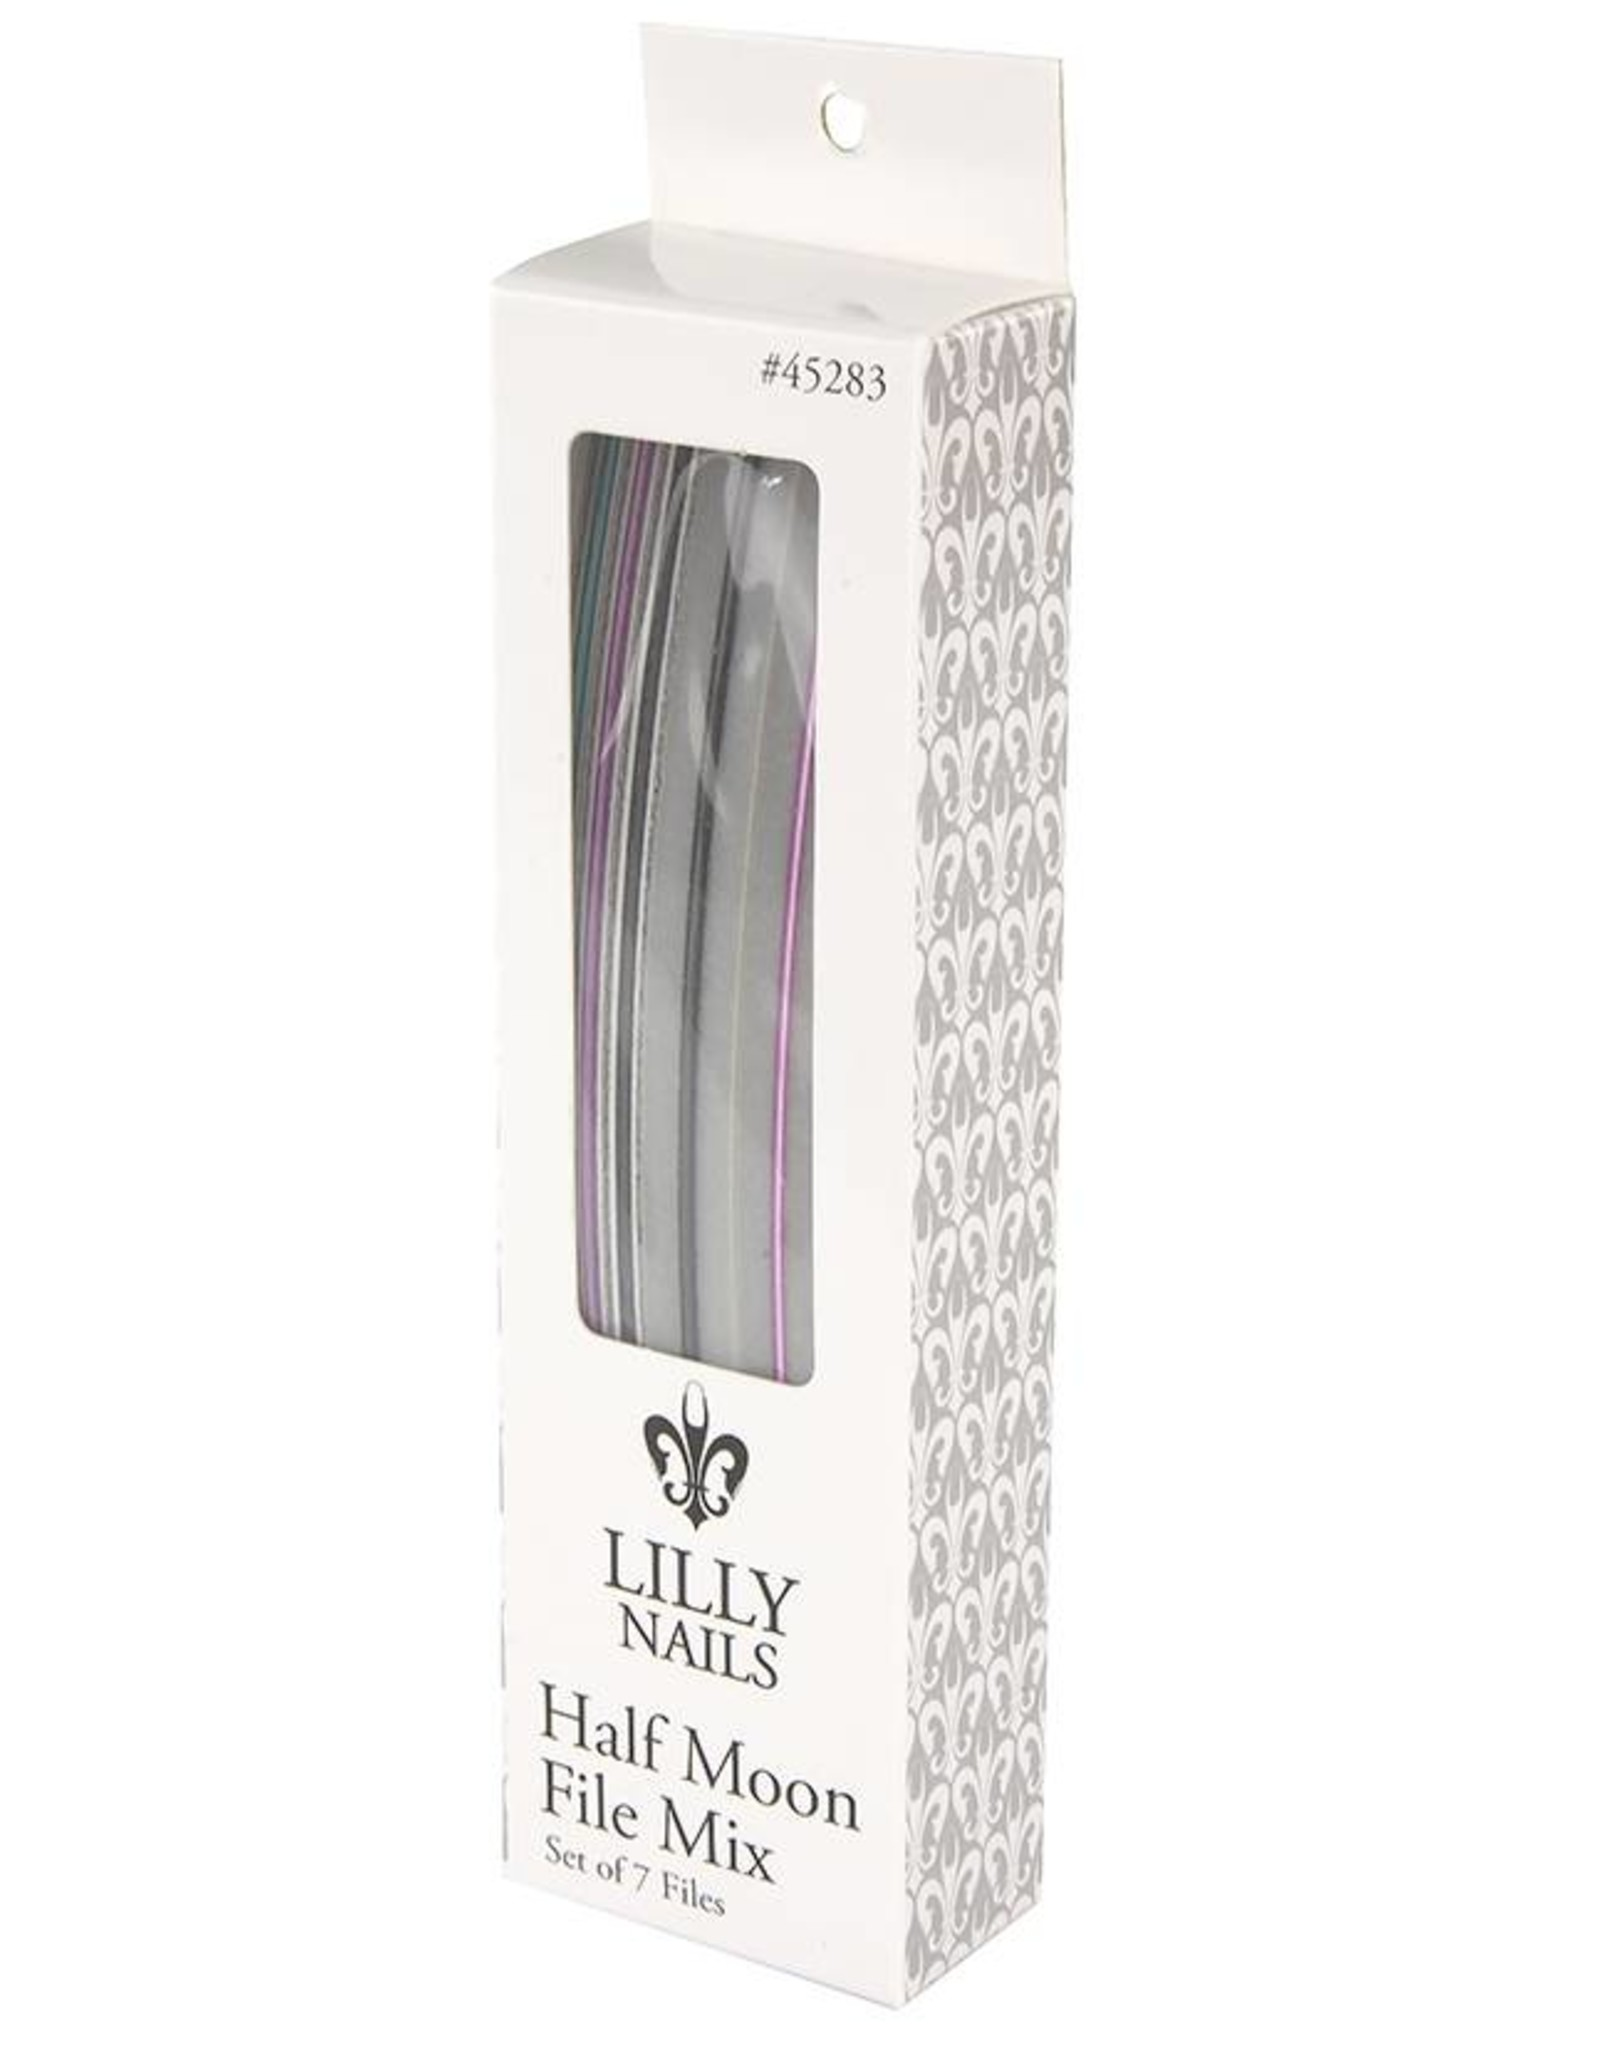 MIXED HALF MOON FILES 7PCS